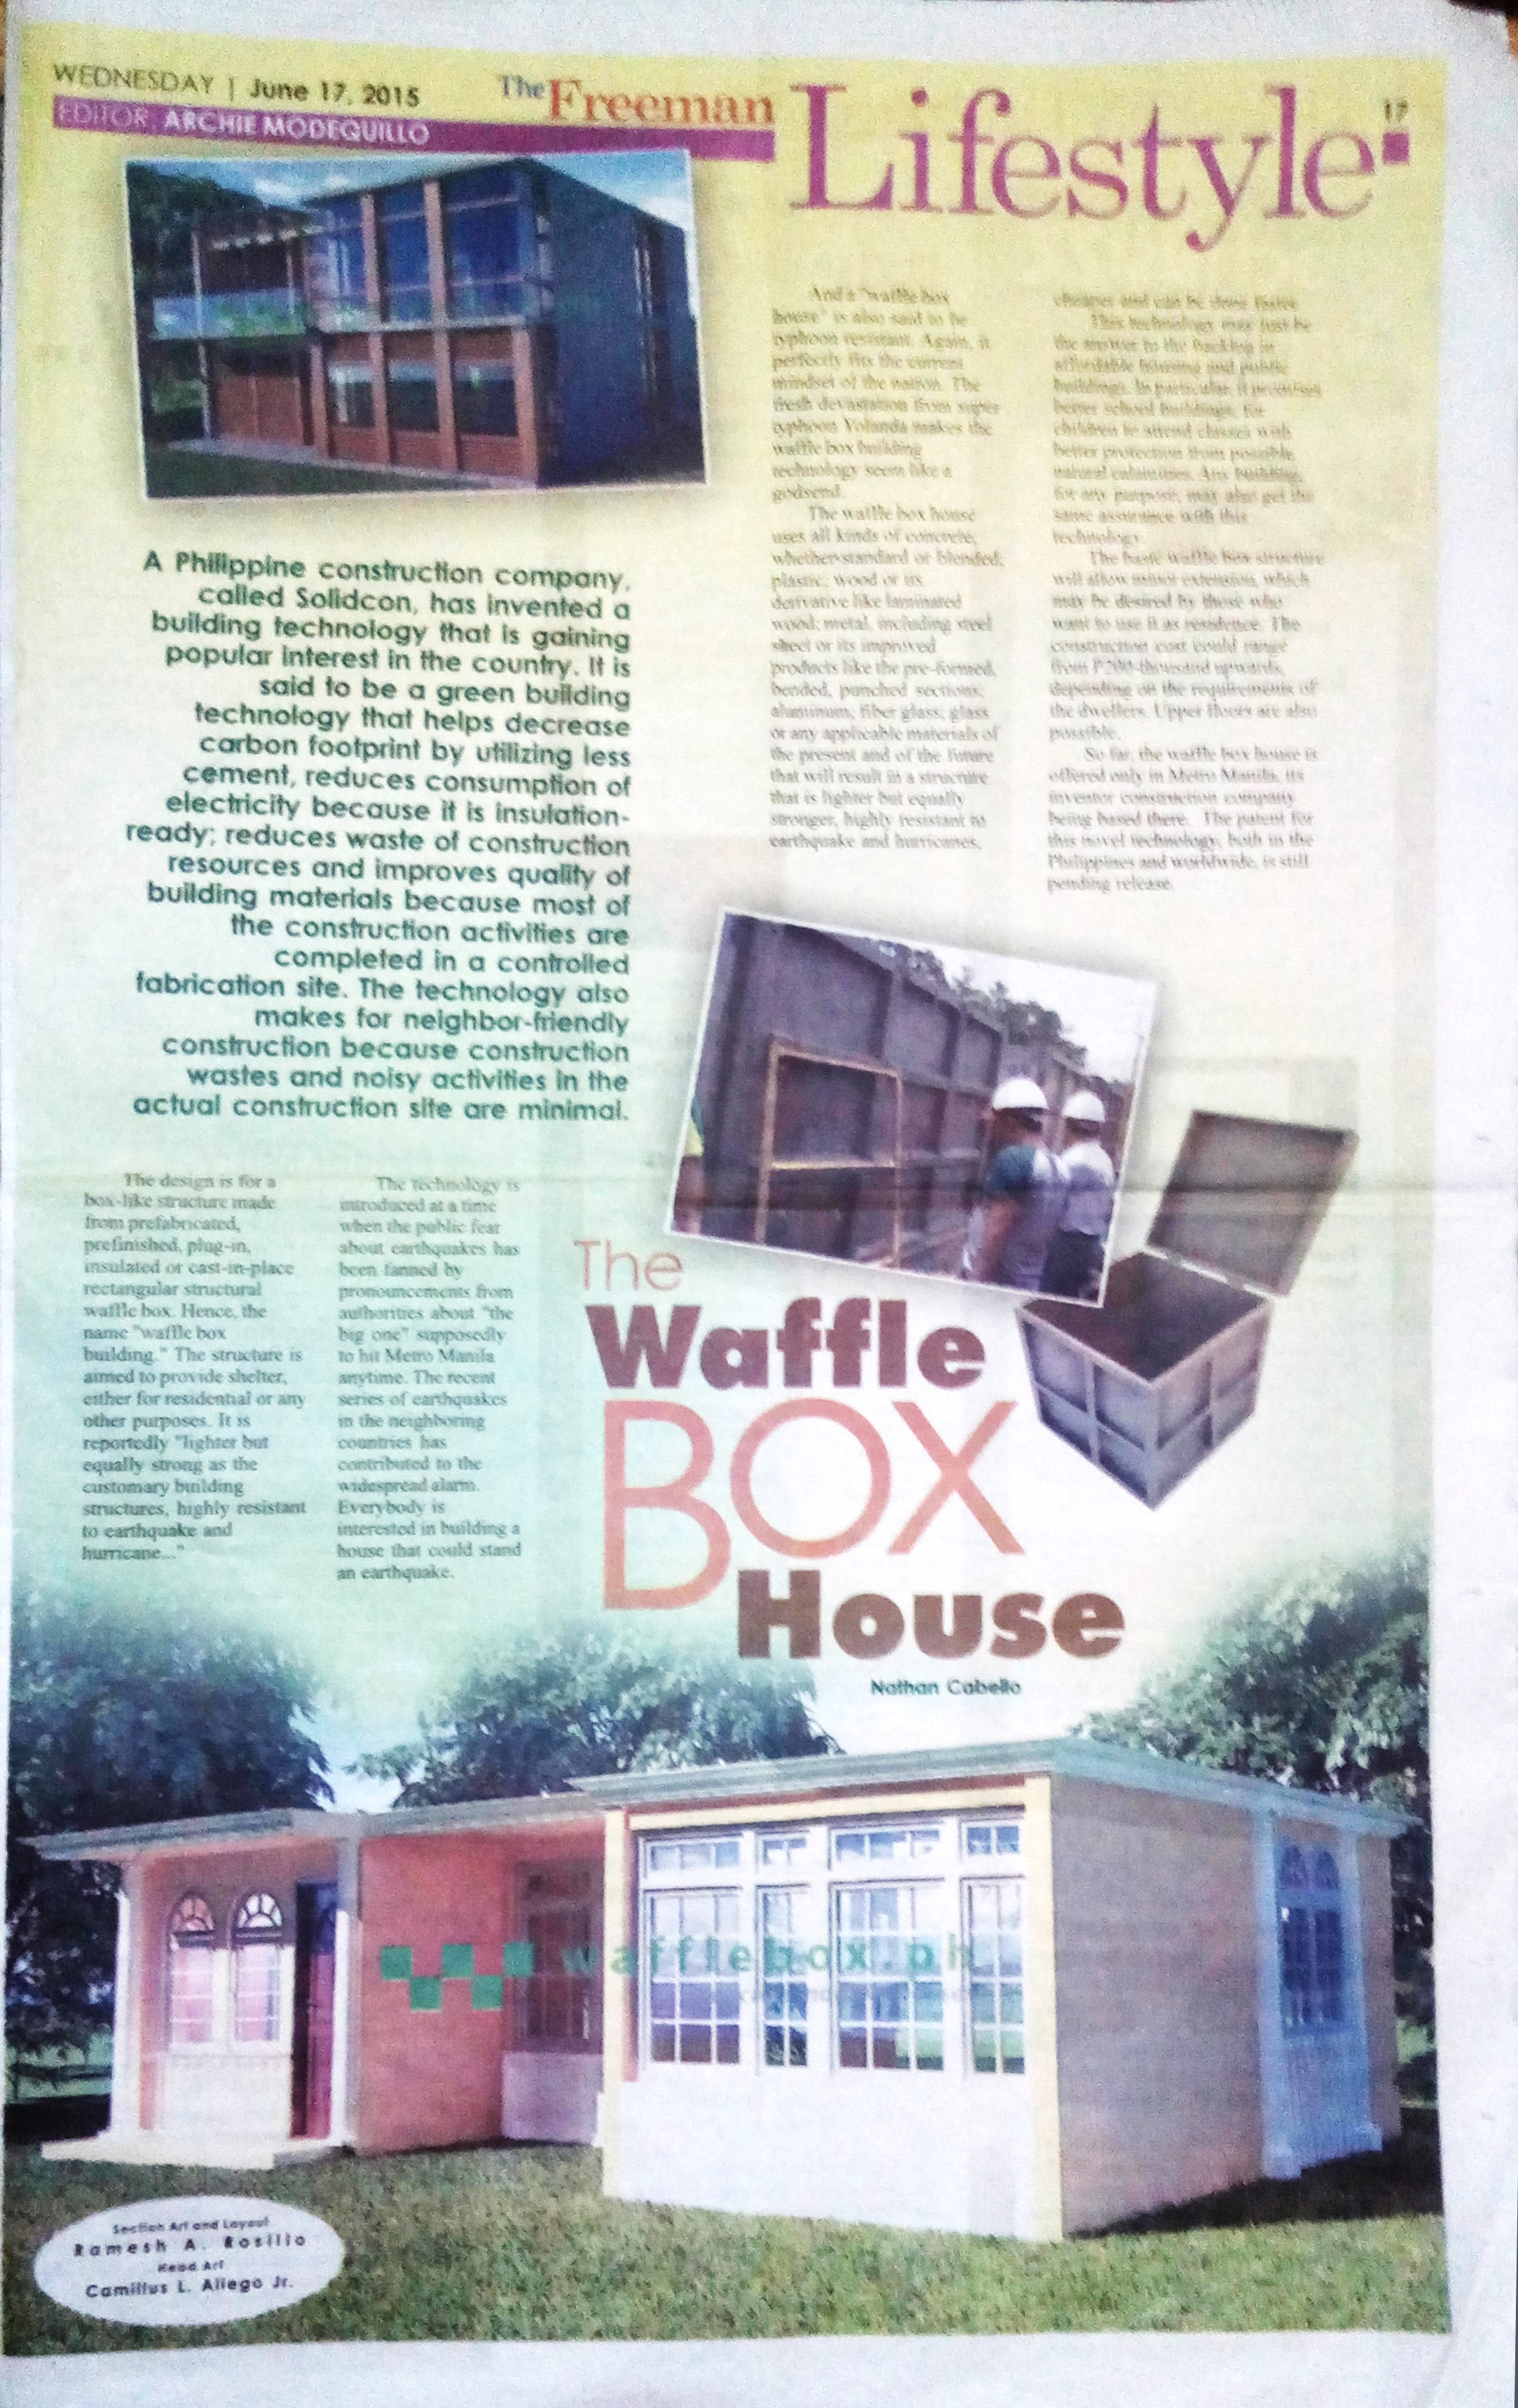 WAFFLE BOX HOUSE FEATURED ON THE BIGGEST NEWSPAPER IN CEBU PHILIPPINES ...